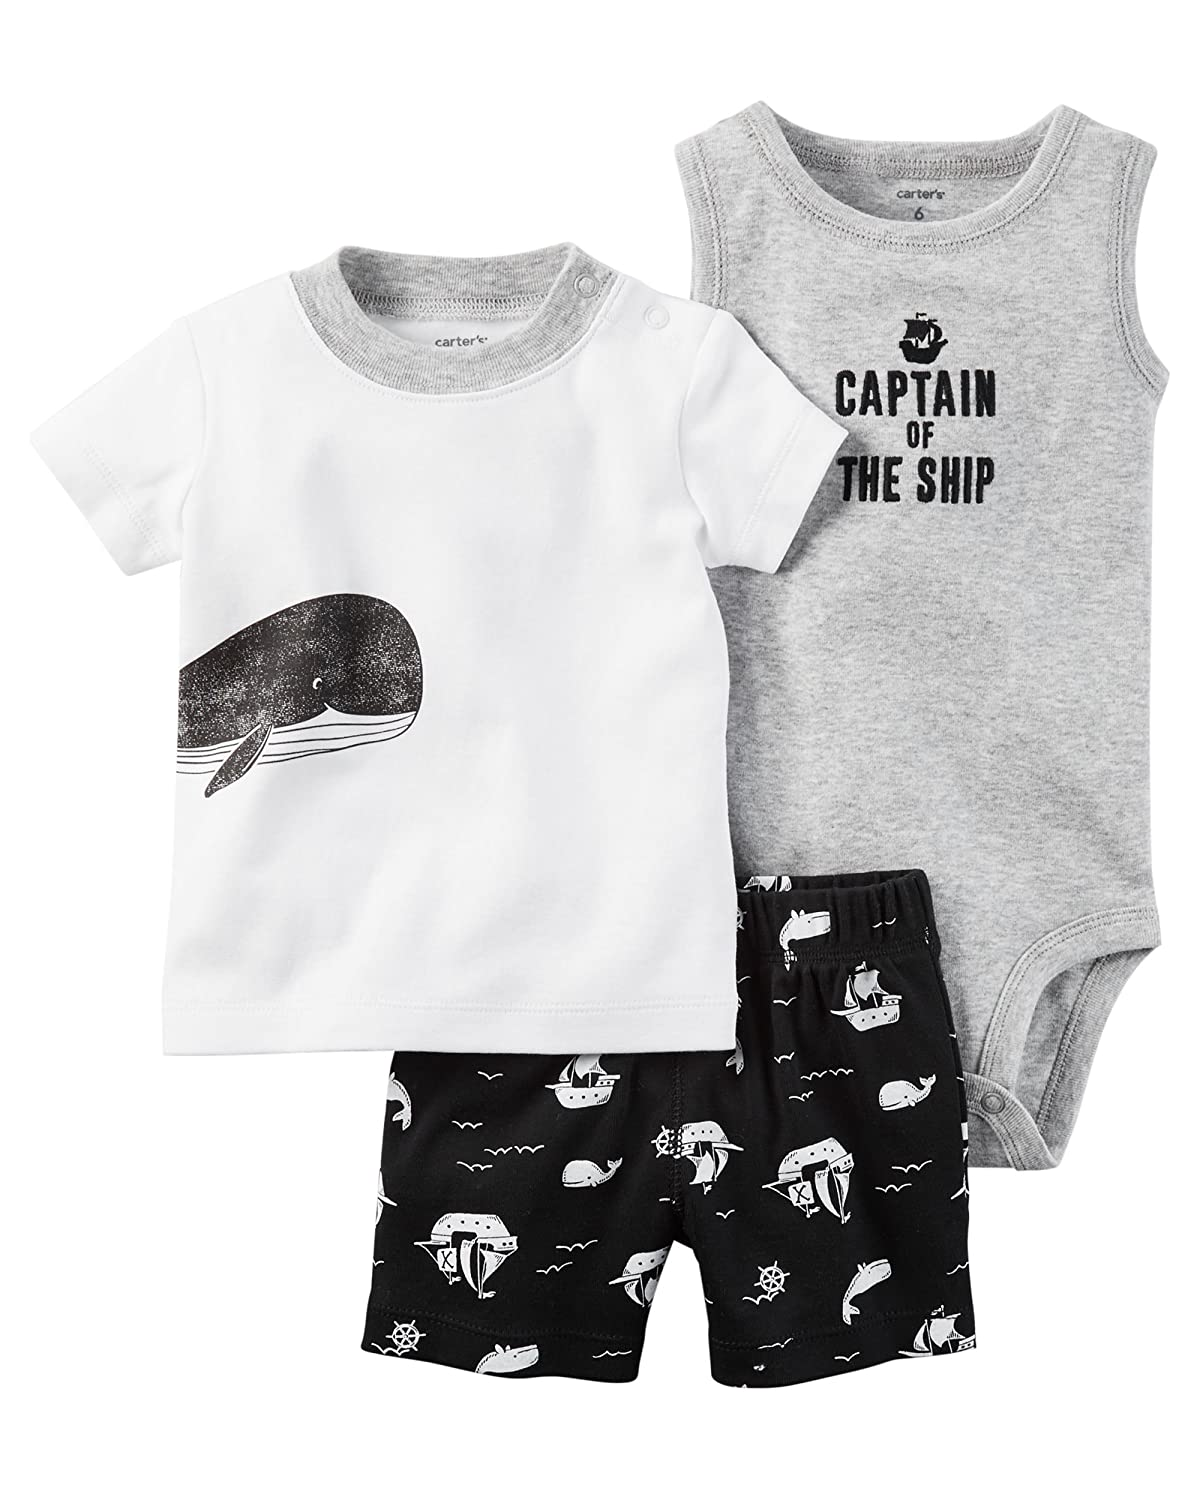 Carters Striped Diaper Cover Set Captain of the Ship Baby Newborn